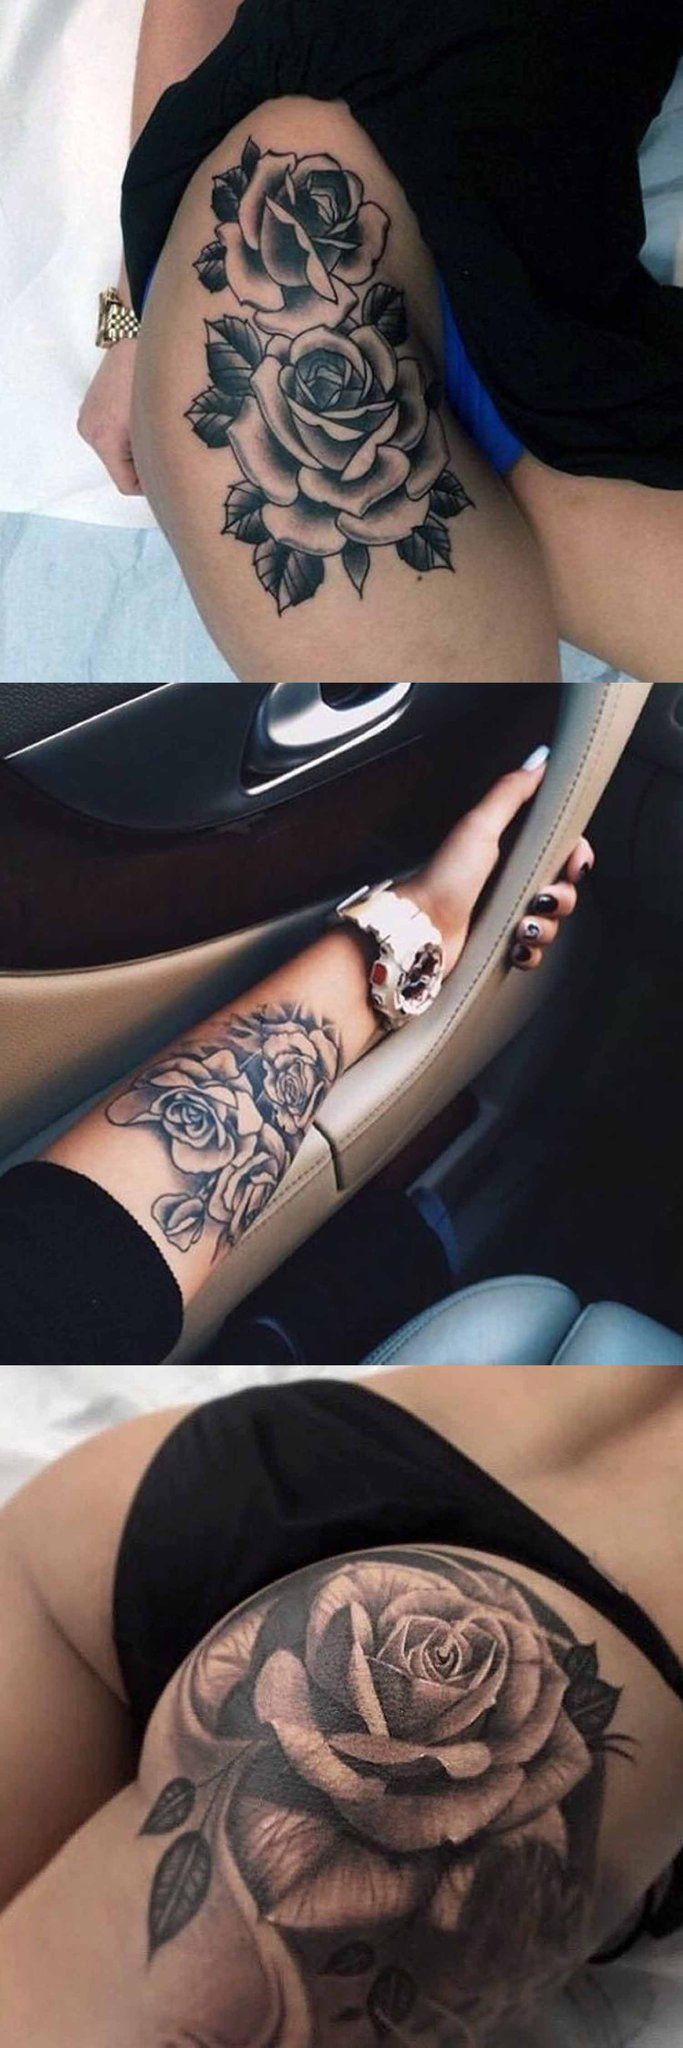 Realistic Black Rose Flower Floral Thigh Leg Arm Wrist Bum Tattoo Ideas for Women at MyBodiArt.com